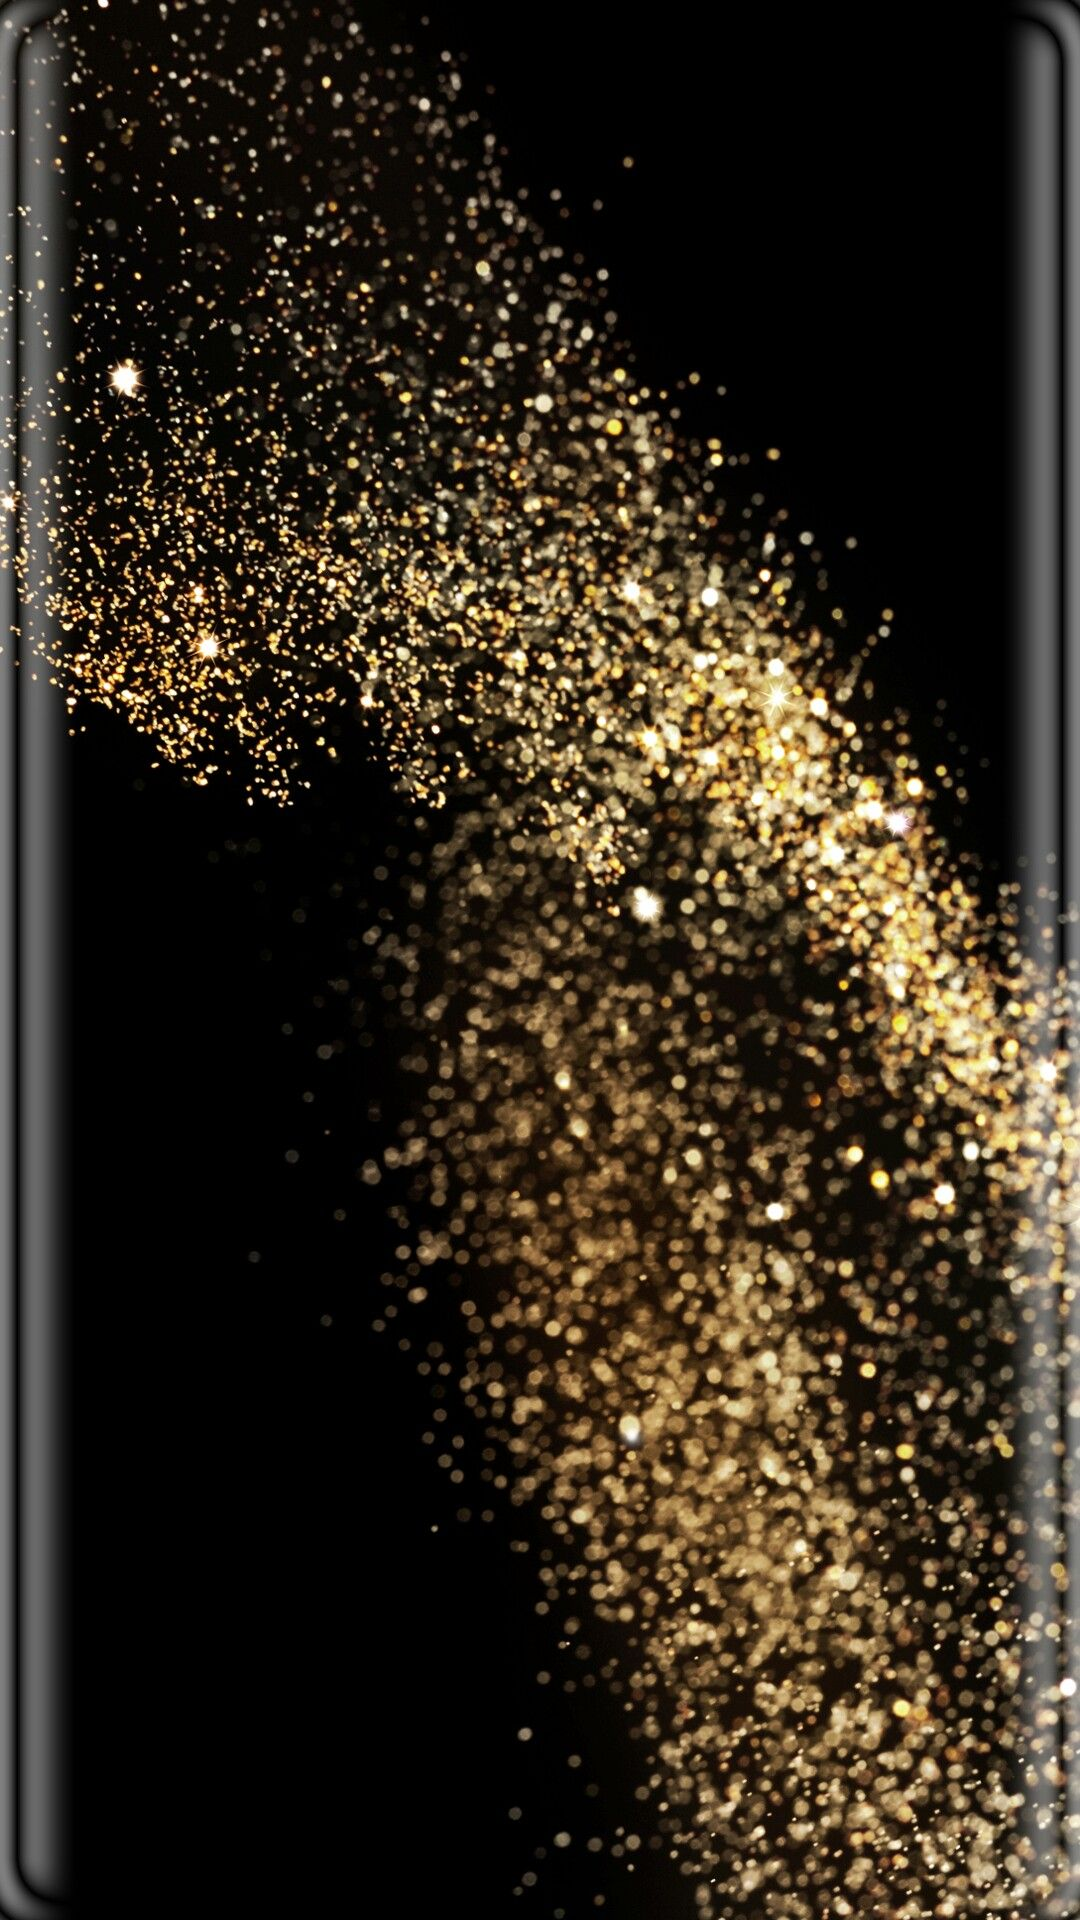 Black With Gold Dust Wallpaper Gold Dust Wallpaper Wallpaper S Iphone Wallpaper Glitter